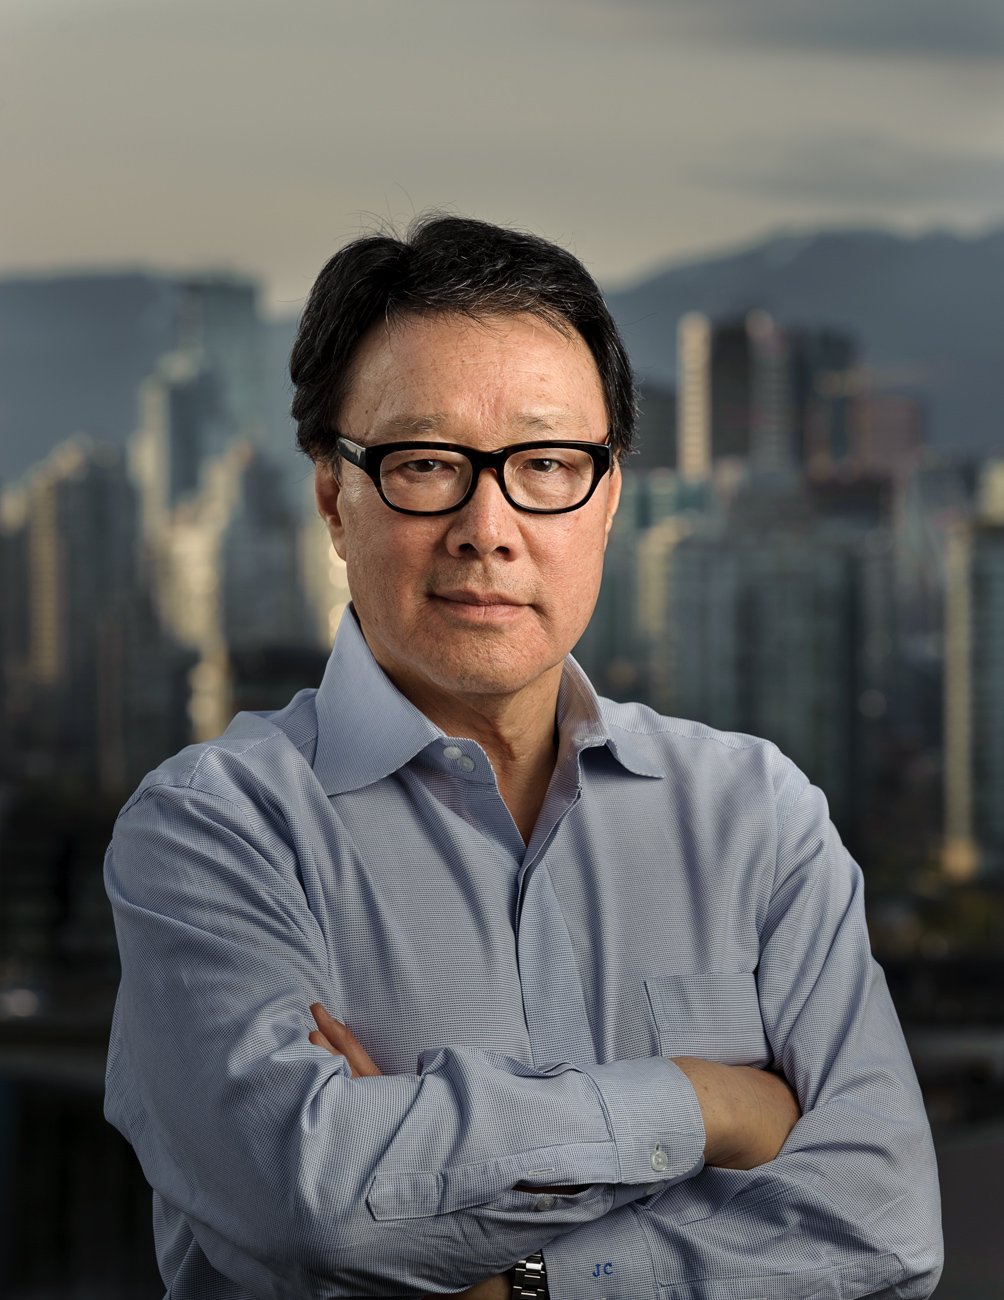 James Chang, Vancouver, BC, Canada